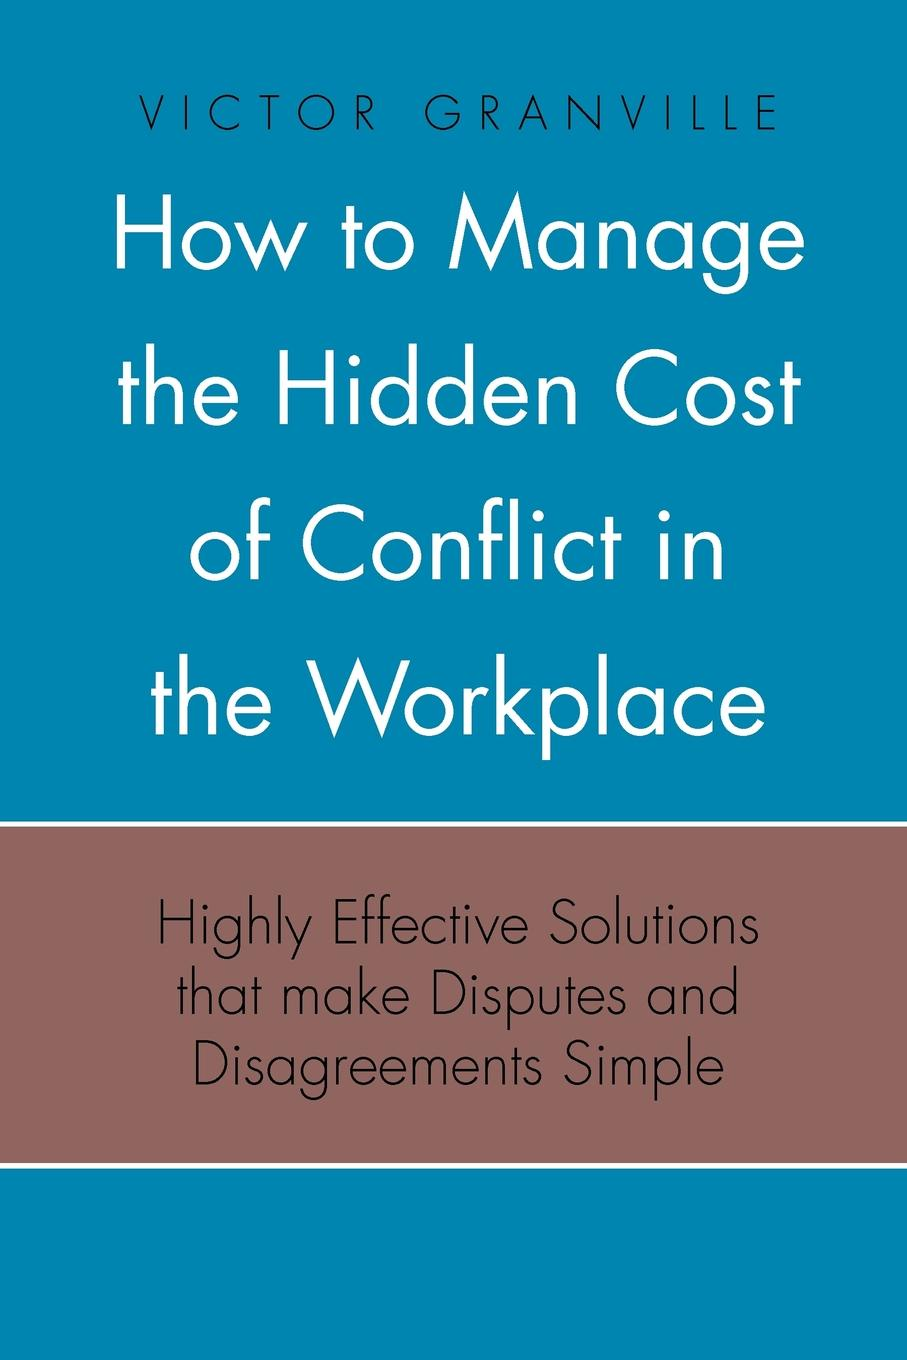 Victor Granville How to Manage the Hidden Cost of Conflict in the Workplace dr debra stewart finding the good in the workplace bully